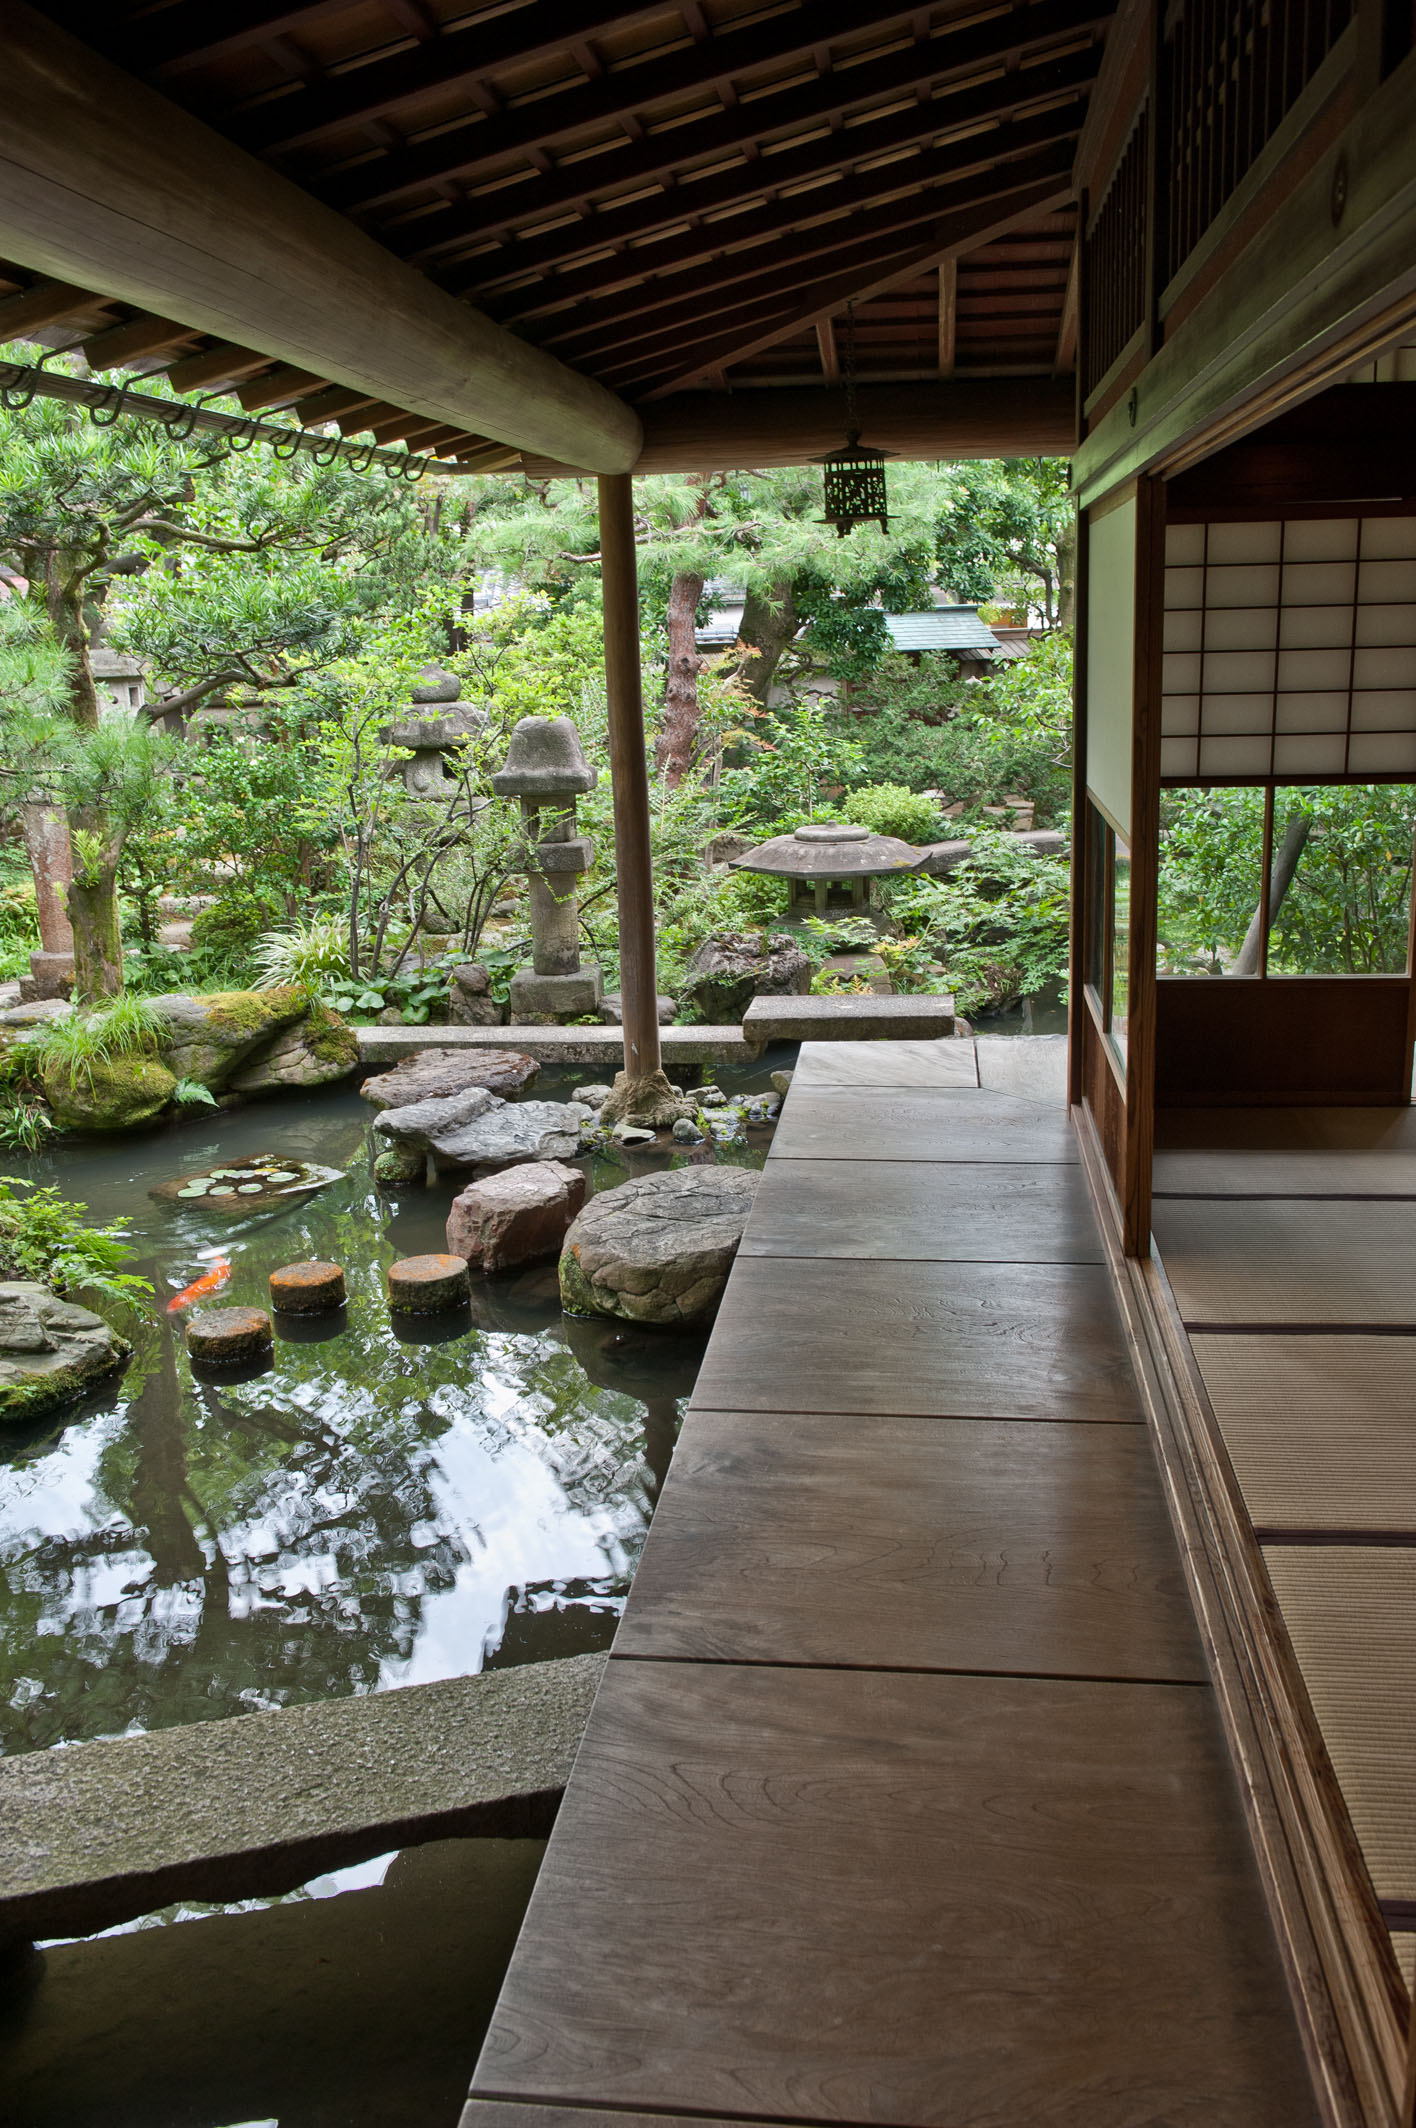 Buddhist Ceremony Traditional Japanese Garden: Small Is Beautiful In A Kanazawa Garden